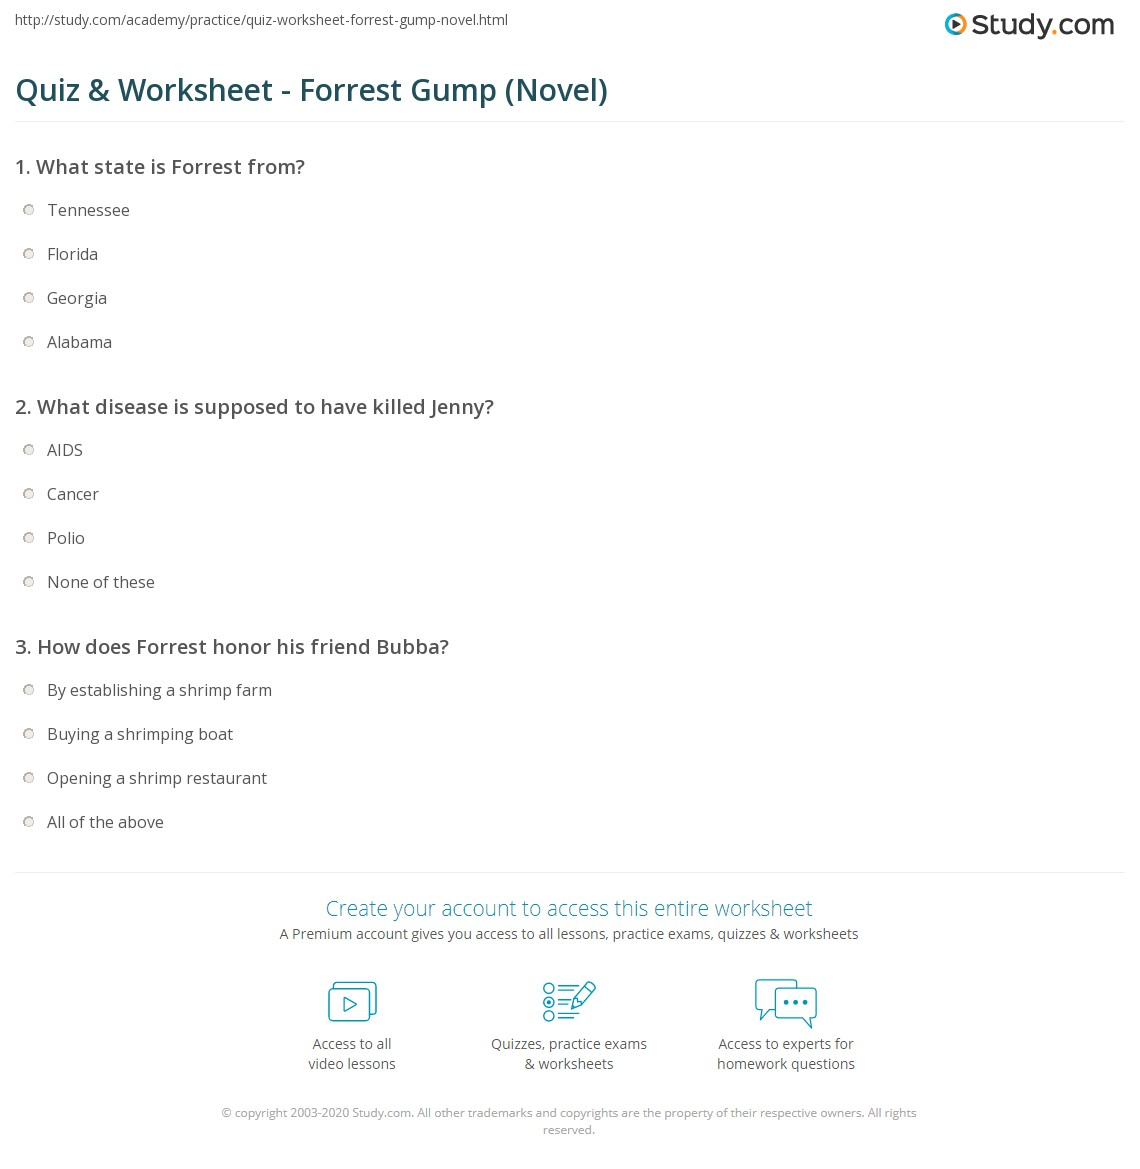 Uncategorized Forrest Gump Worksheet quiz worksheet forrest gump novel study com print book summary historical references analysis worksheet